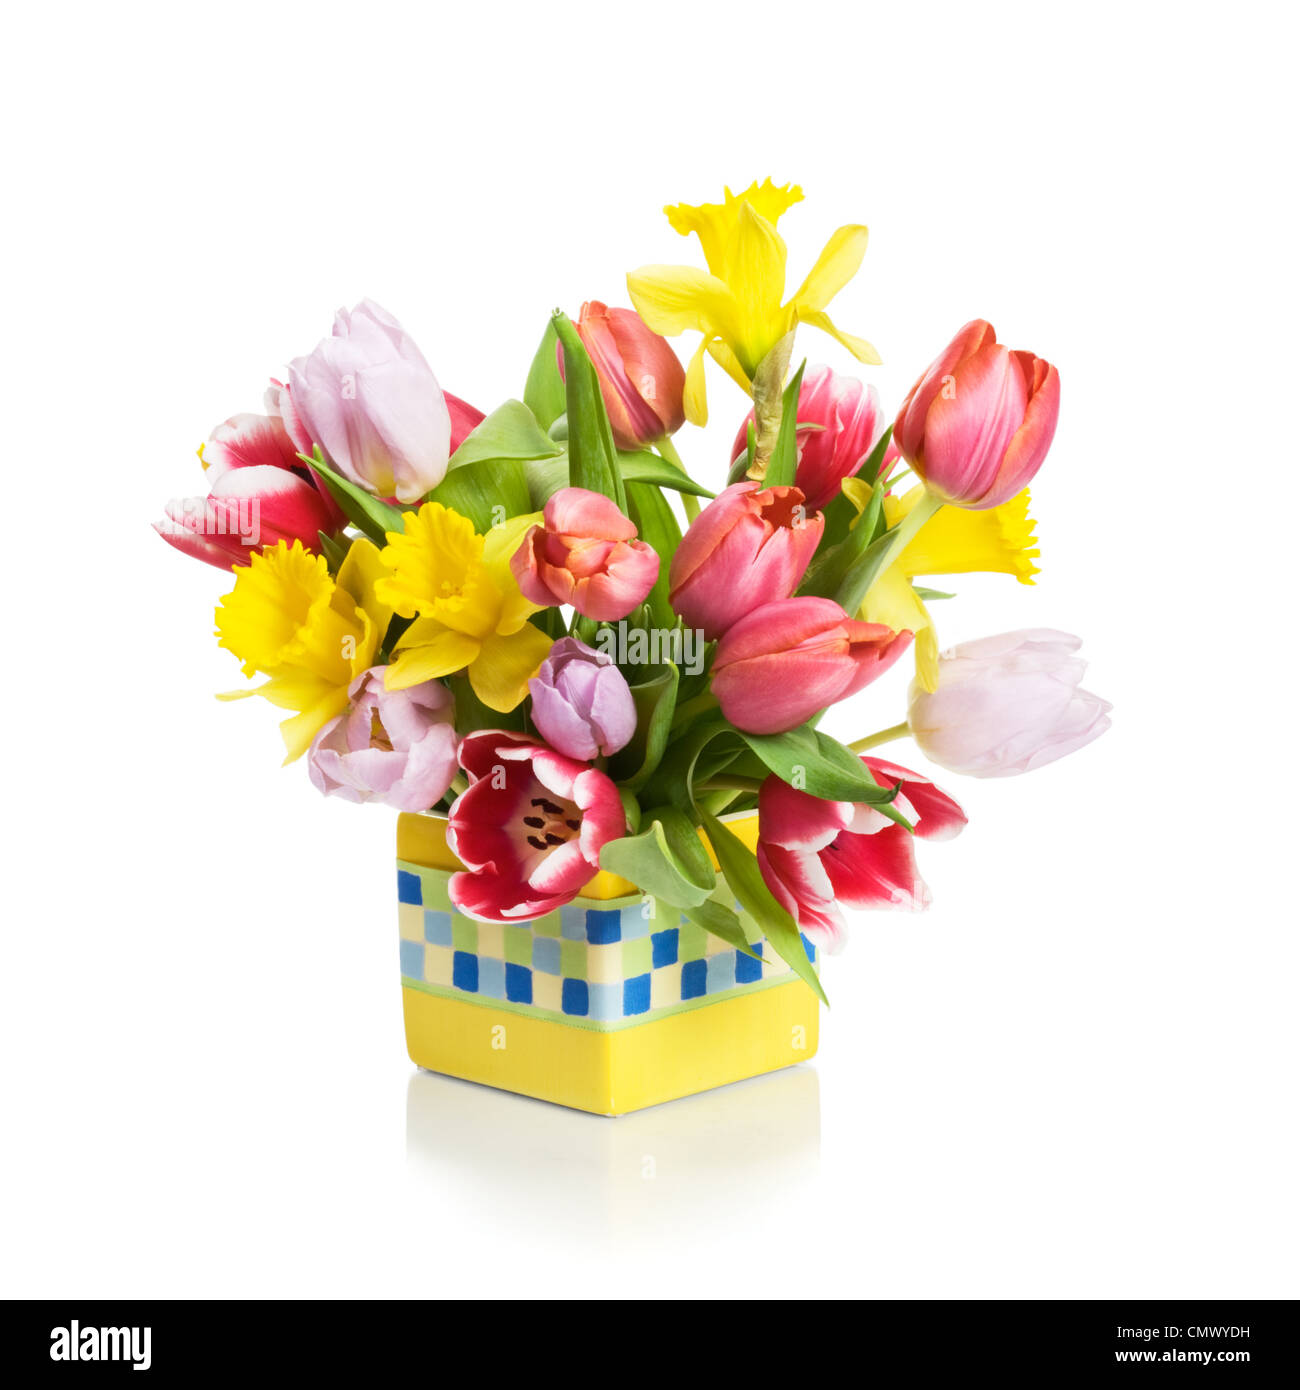 Yellow Flower Pot With Tulips And Daffodils On White Background